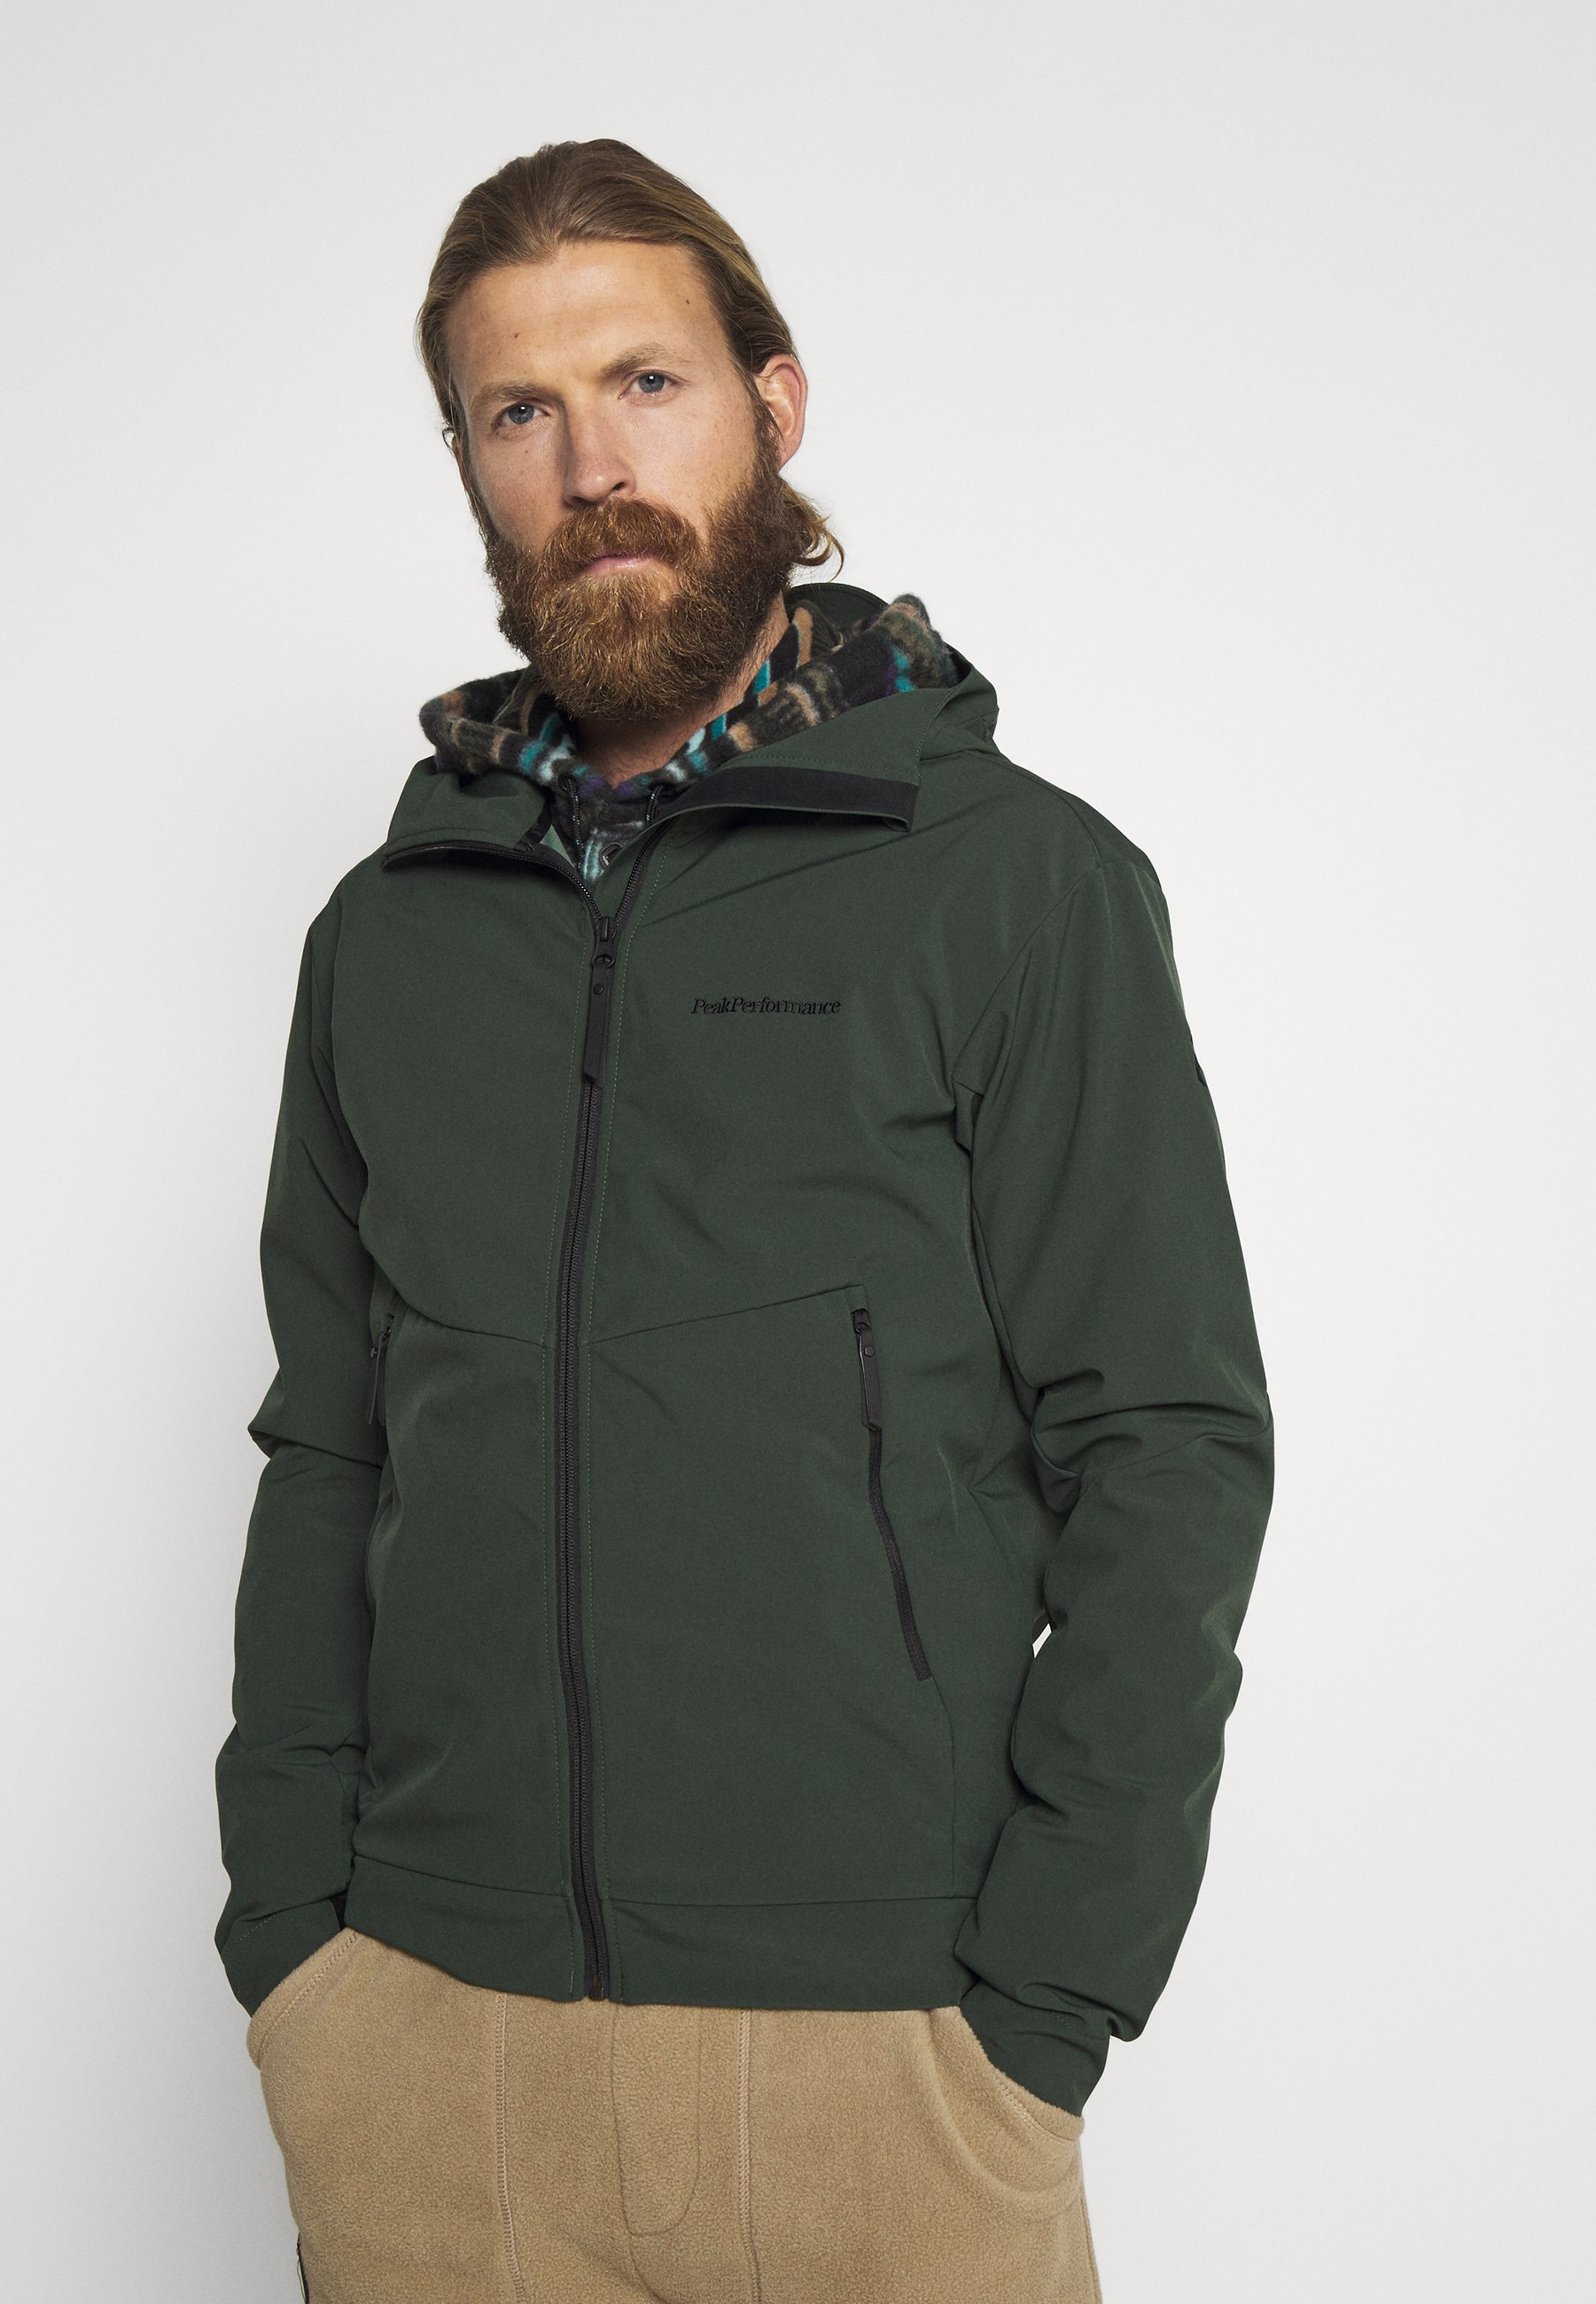 Bestille Hyper Online Tøj til herrer Peak Performance ADVENTURE HOOD JACKET Outdoor jakke drift green gdzZwf sWfvVr